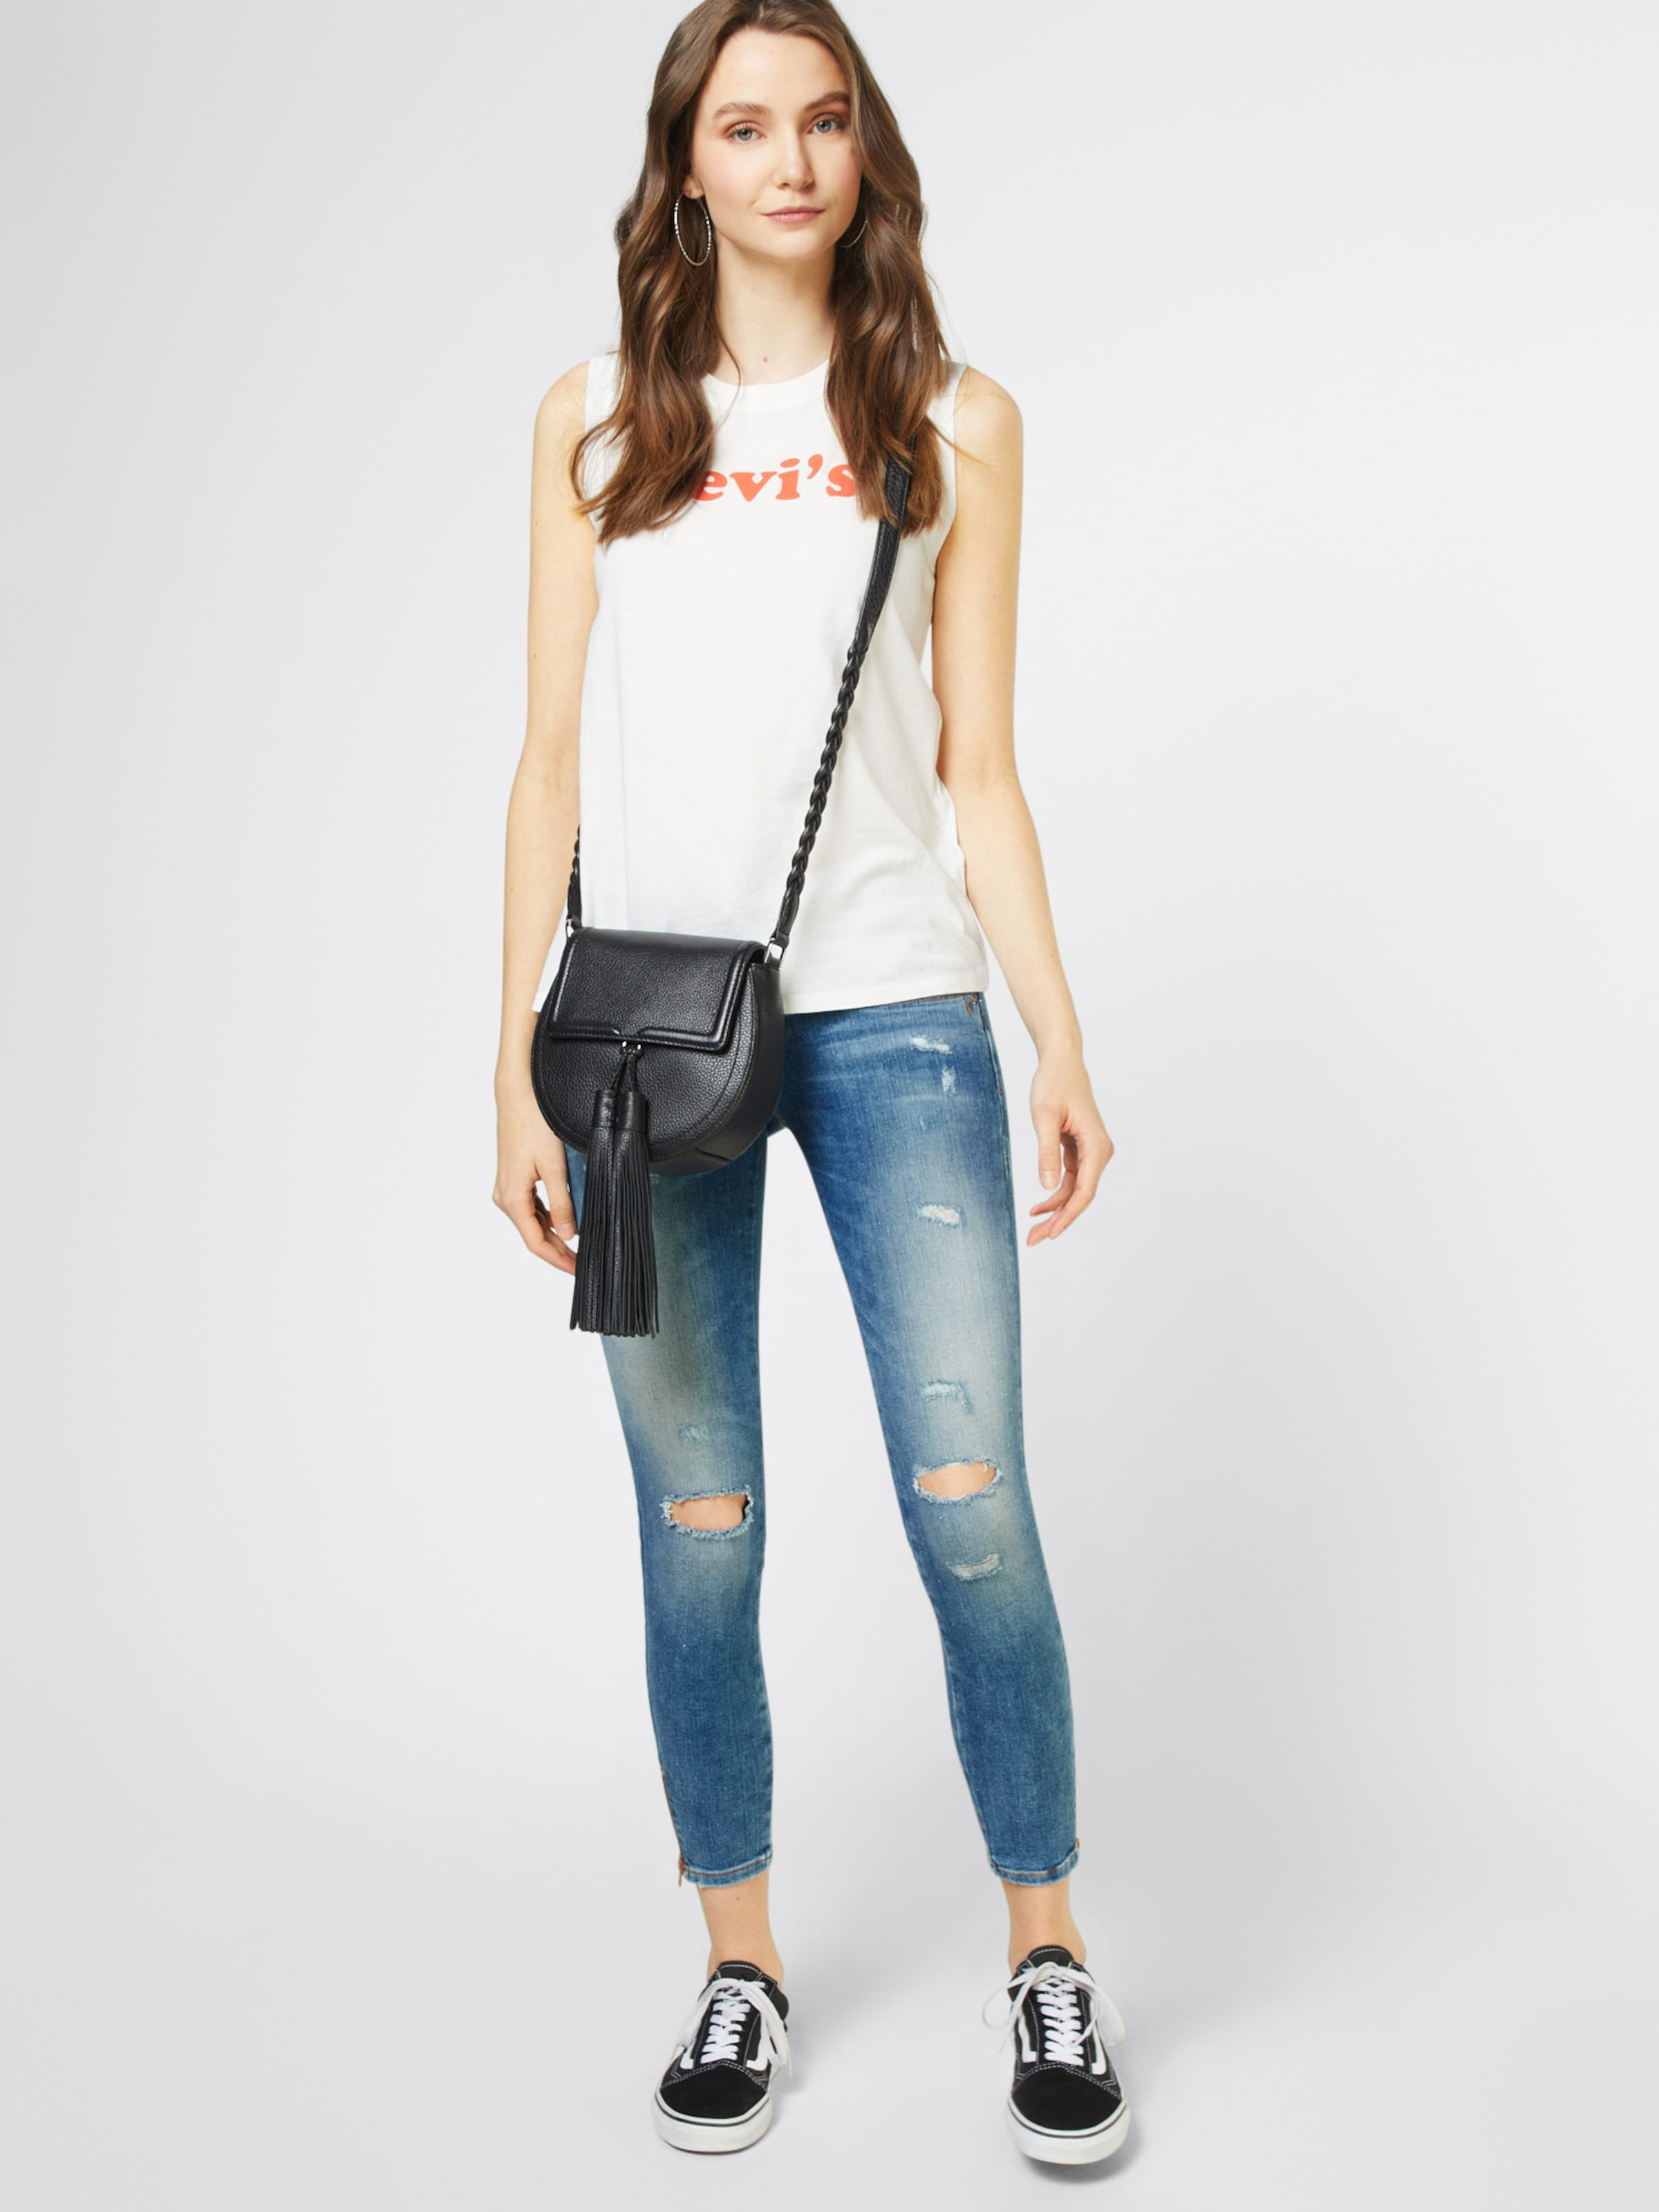 In Jeans Ltb Jeans Blau Blau 'amore' Ltb Ltb In In 'amore' Jeans 'amore' Aj345qRL